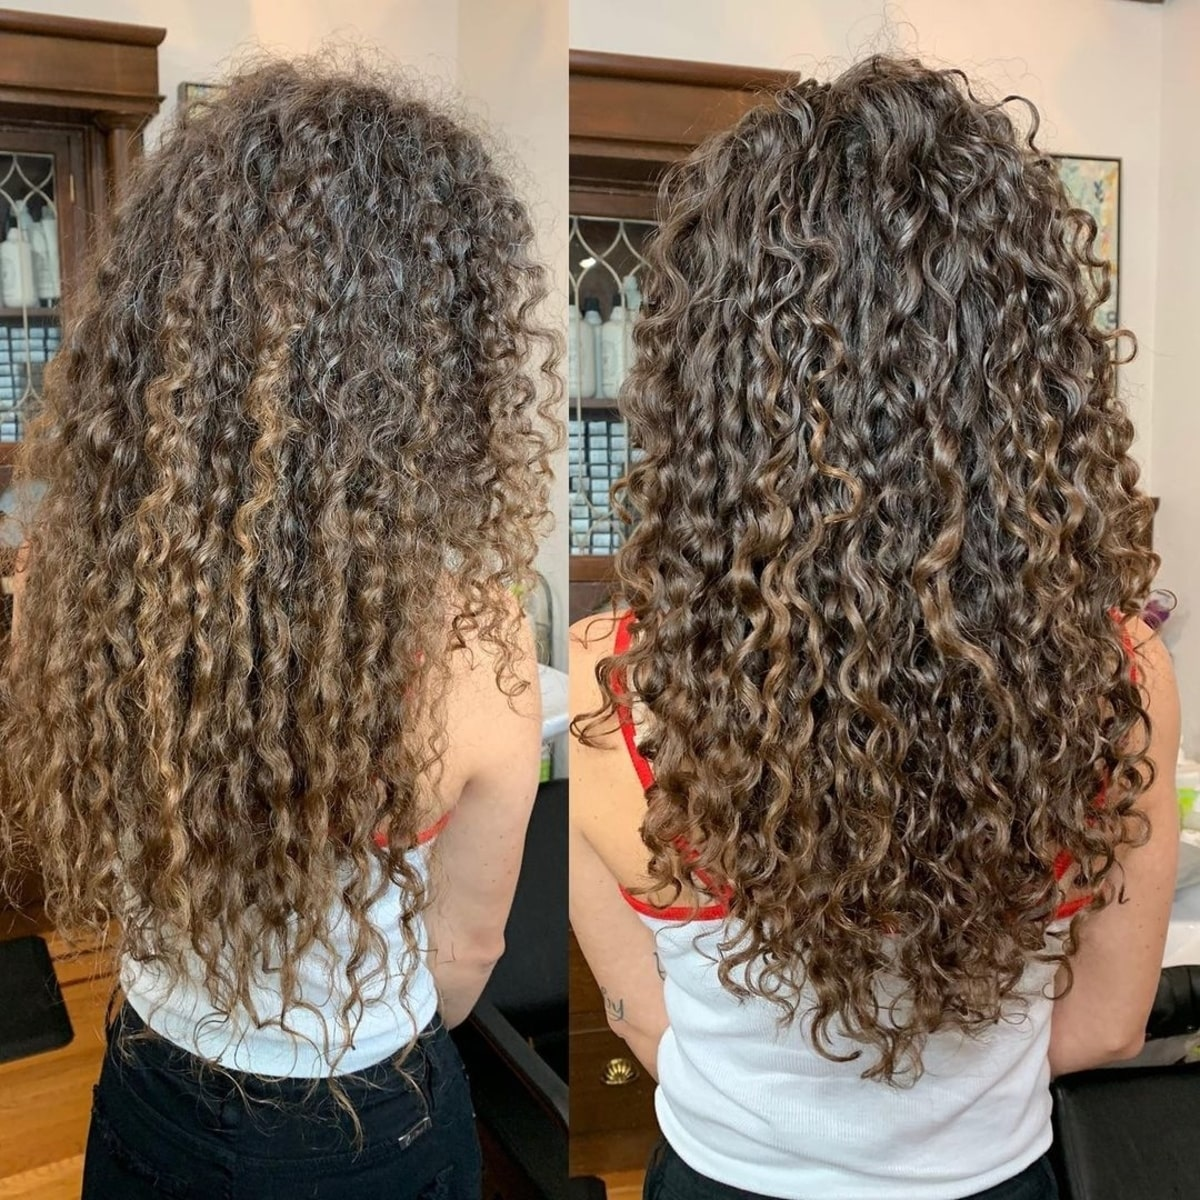 Top 15 Layered Curly Hair Ideas